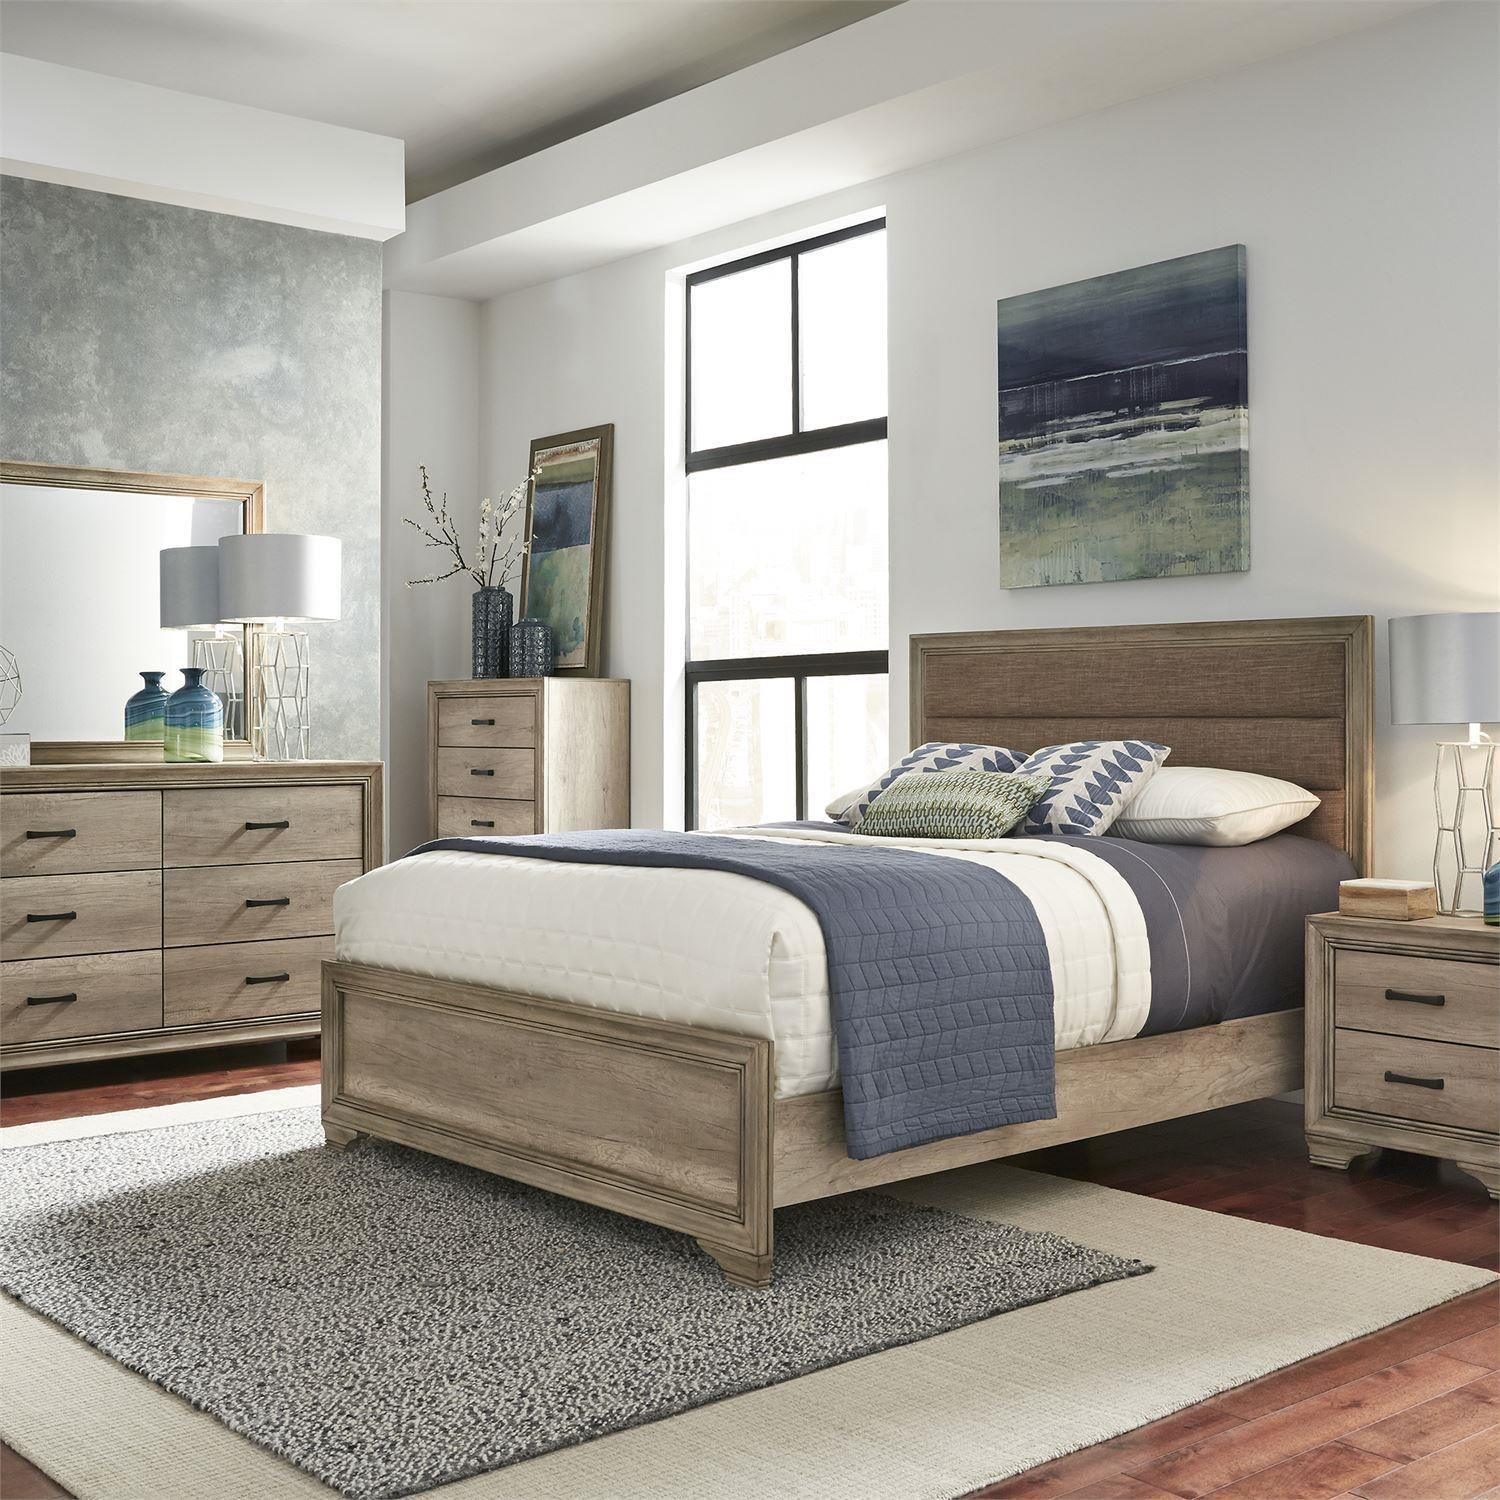 Sun Valley 4-Piece King Bedroom Set by Freedom Furniture at Ruby Gordon Home